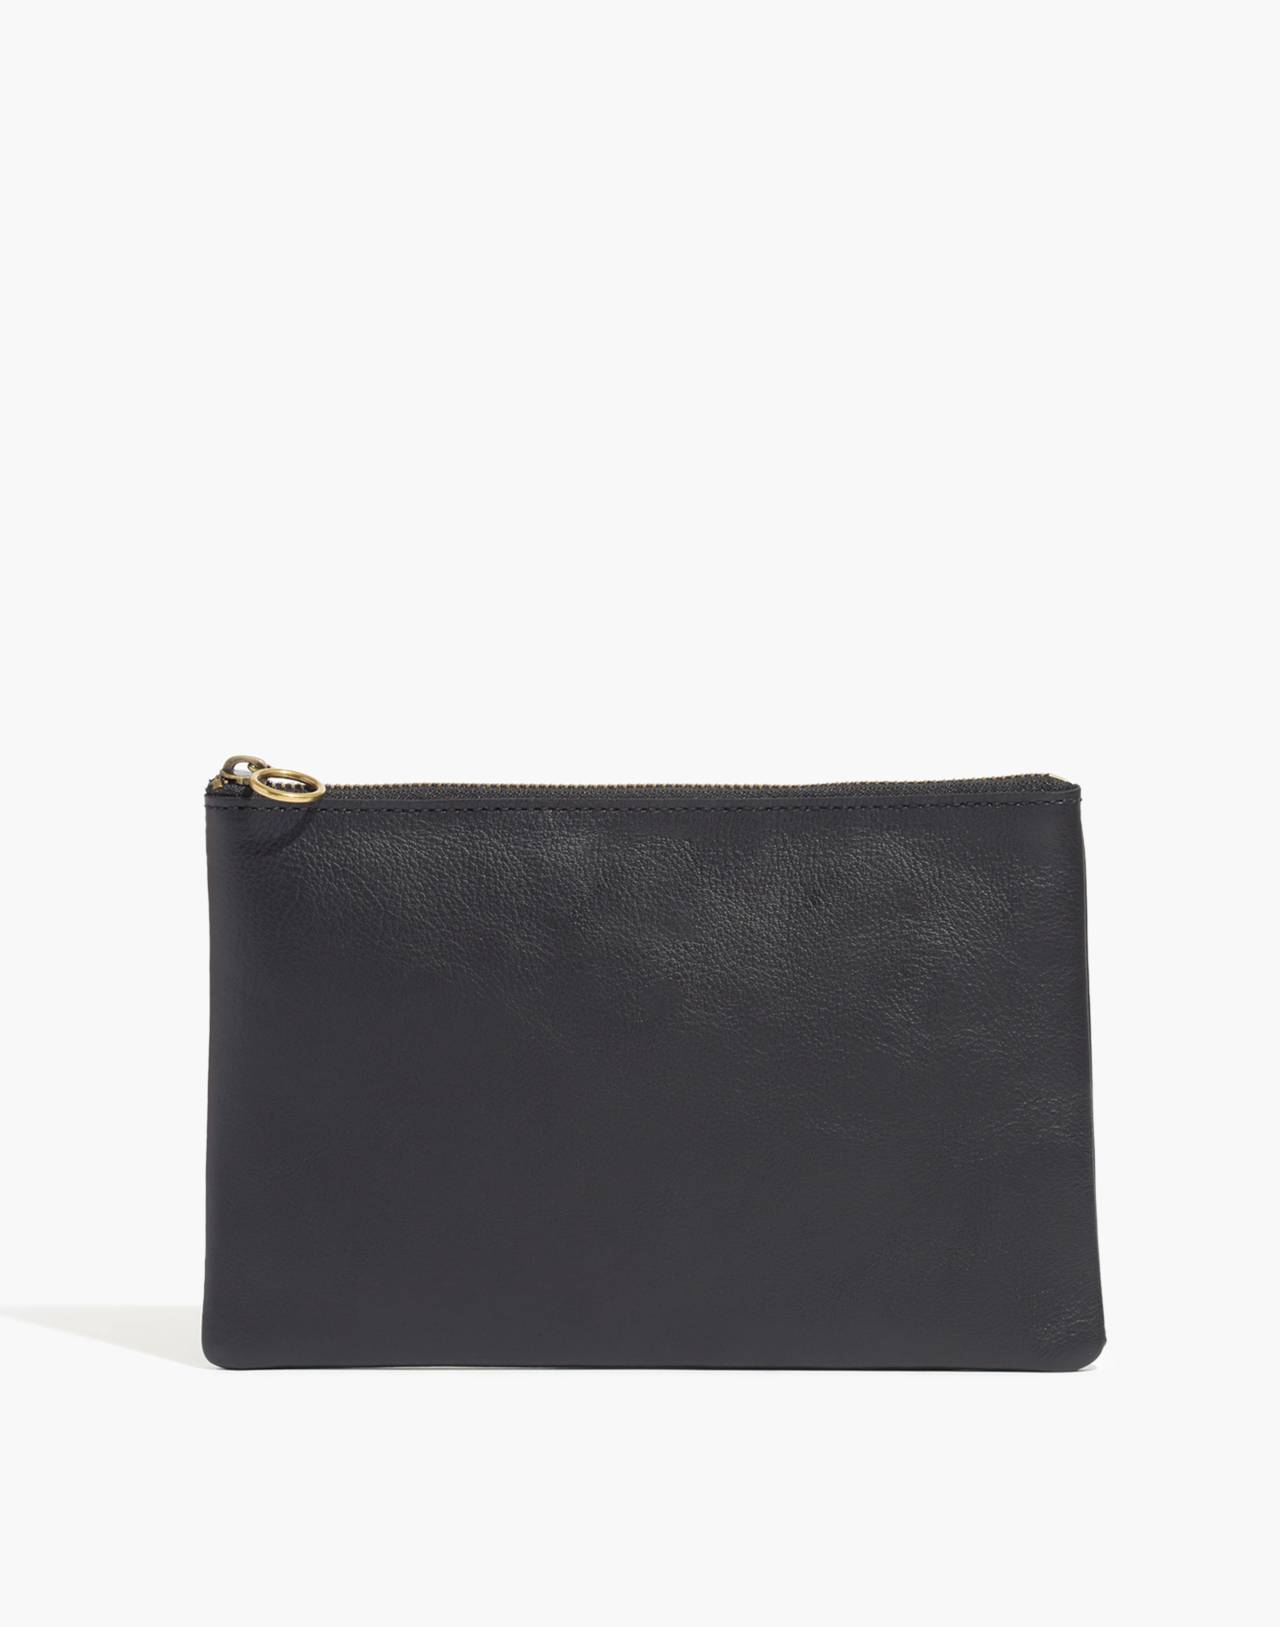 The Leather Pouch Clutch in true black image 1